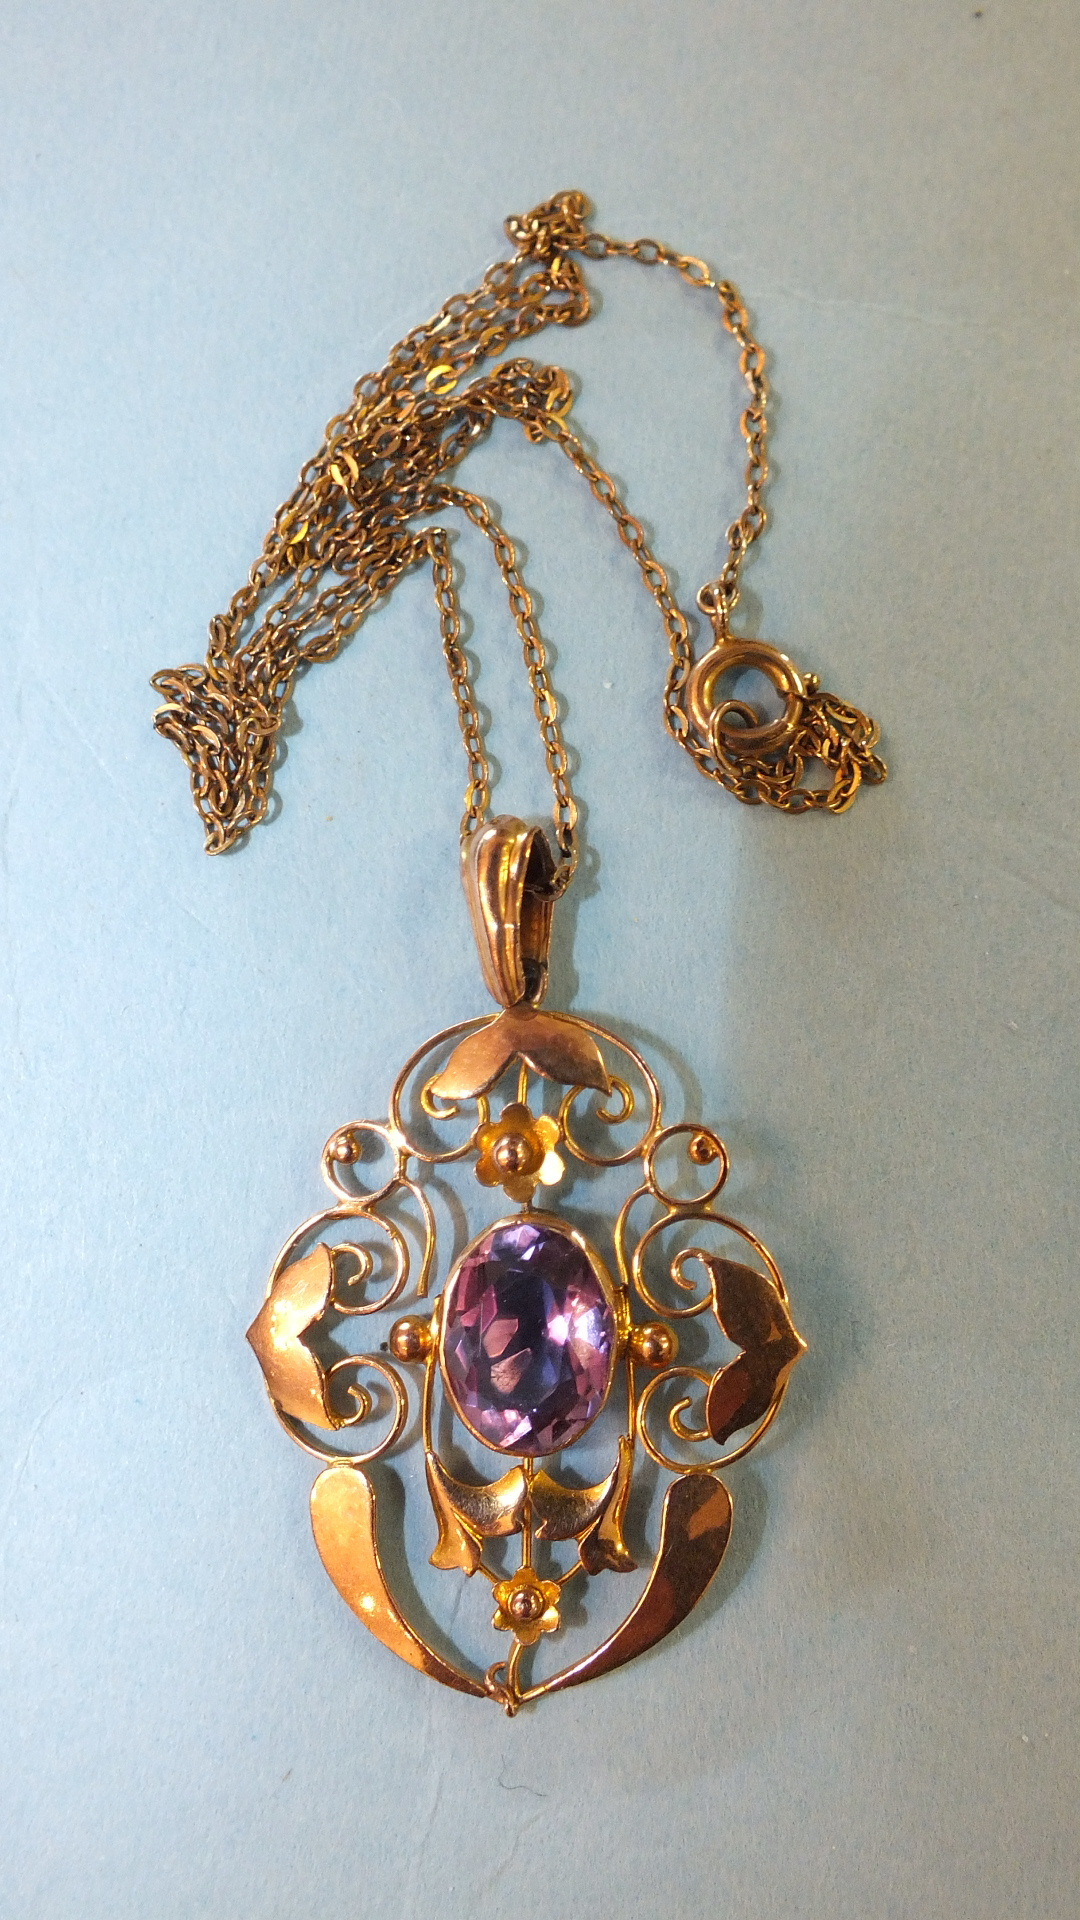 Lot 201 - An Edwardian 9ct gold open-work pendant set amethyst, on trace chain, 3.5g.